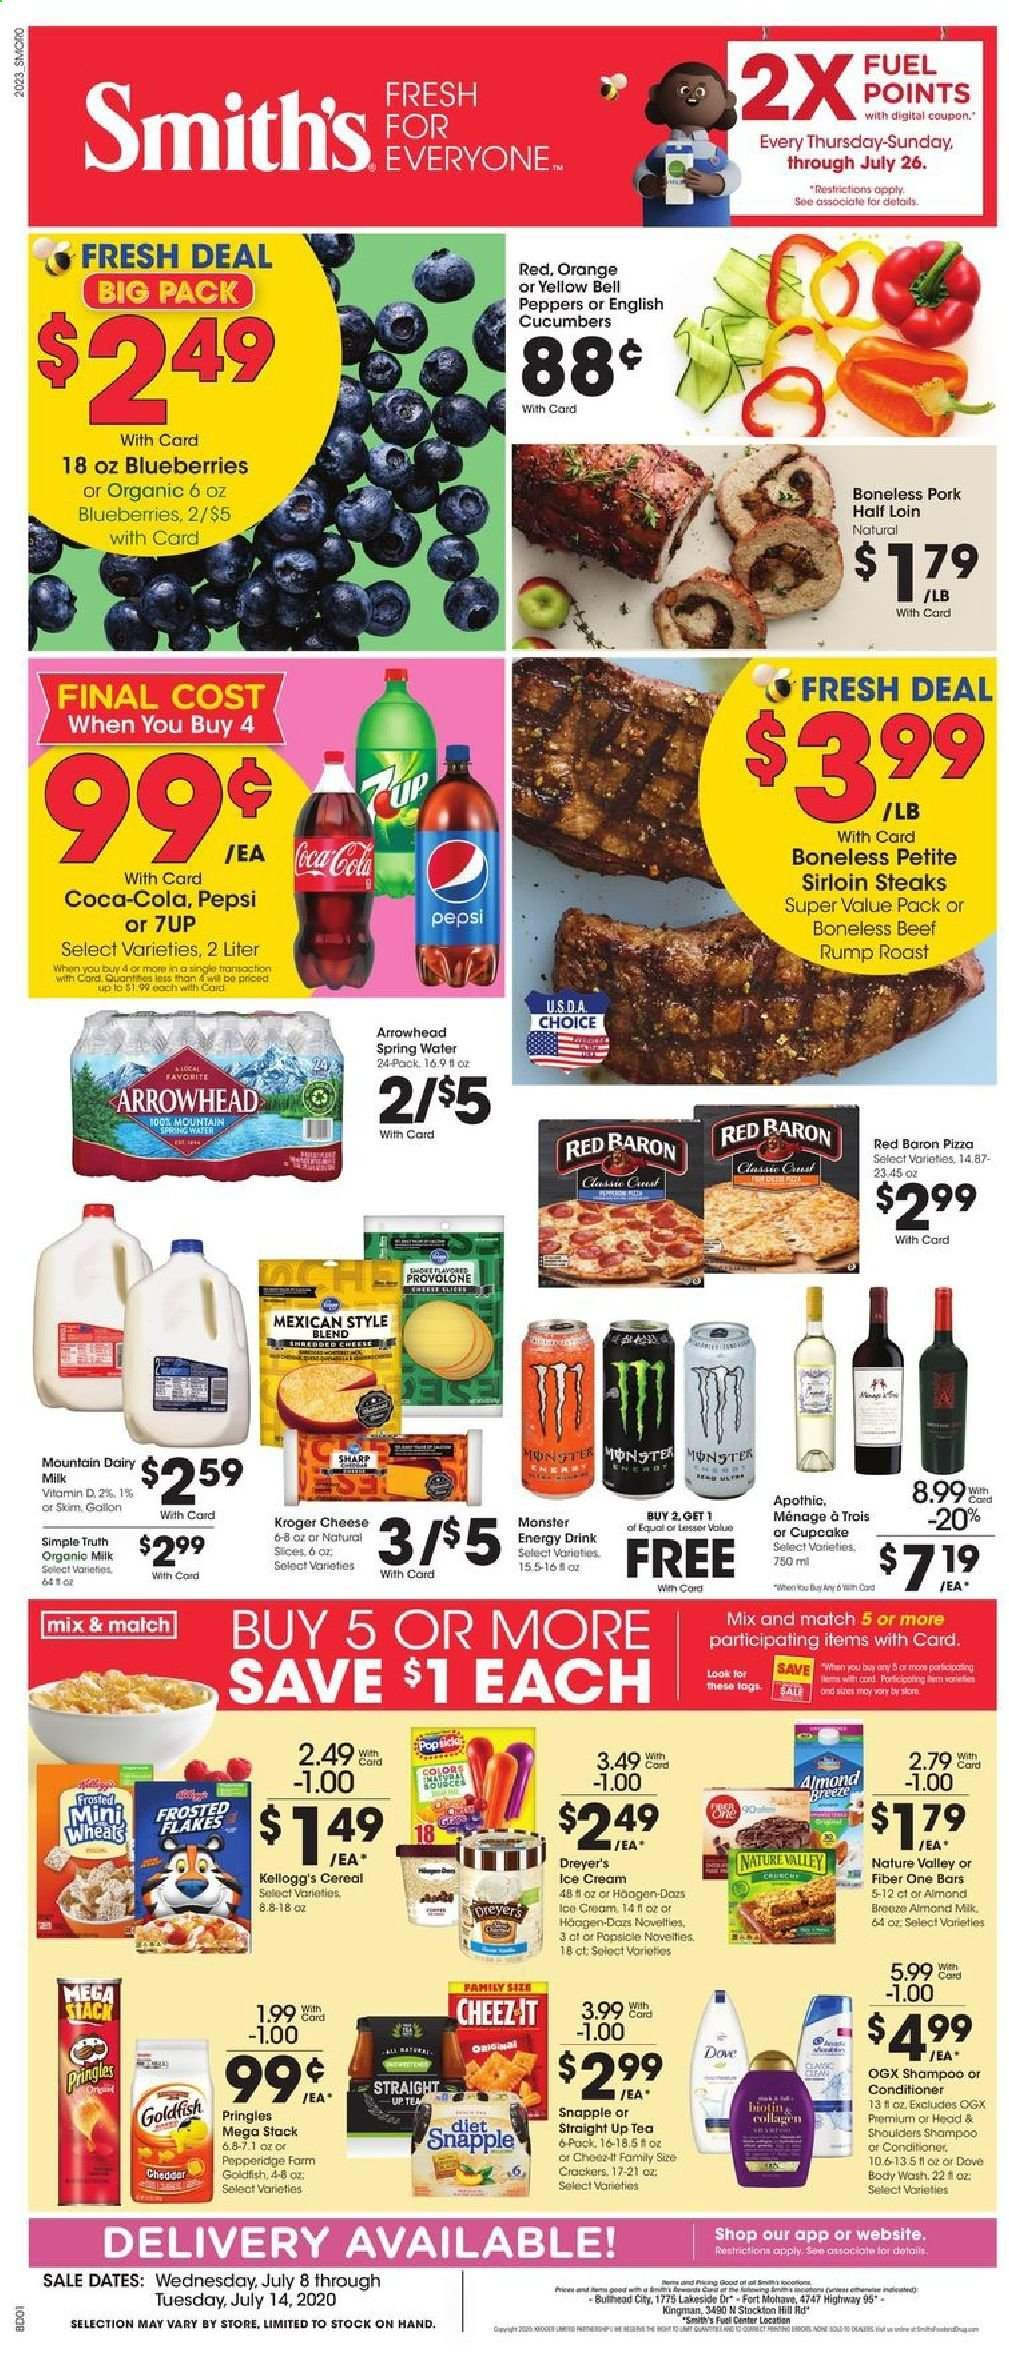 Smith's Flyer - 07.08.2020 - 07.14.2020 - Sales products - beef meat, bell peppers, blueberries, body wash, cereals, coca-cola, conditioner, crackers, cucumbers, cupcake, cupcakes, dates, dove, fuel, mat, milk, shampoo, sharp, spring water, tea, ice cream, pizza, pork meat, pringles, provolone, ps+, cheddar, pepsi, orange, organic, cheese, cereal, energy drink, monster, flakes, drink, peppers, gard, roast. Page 1.